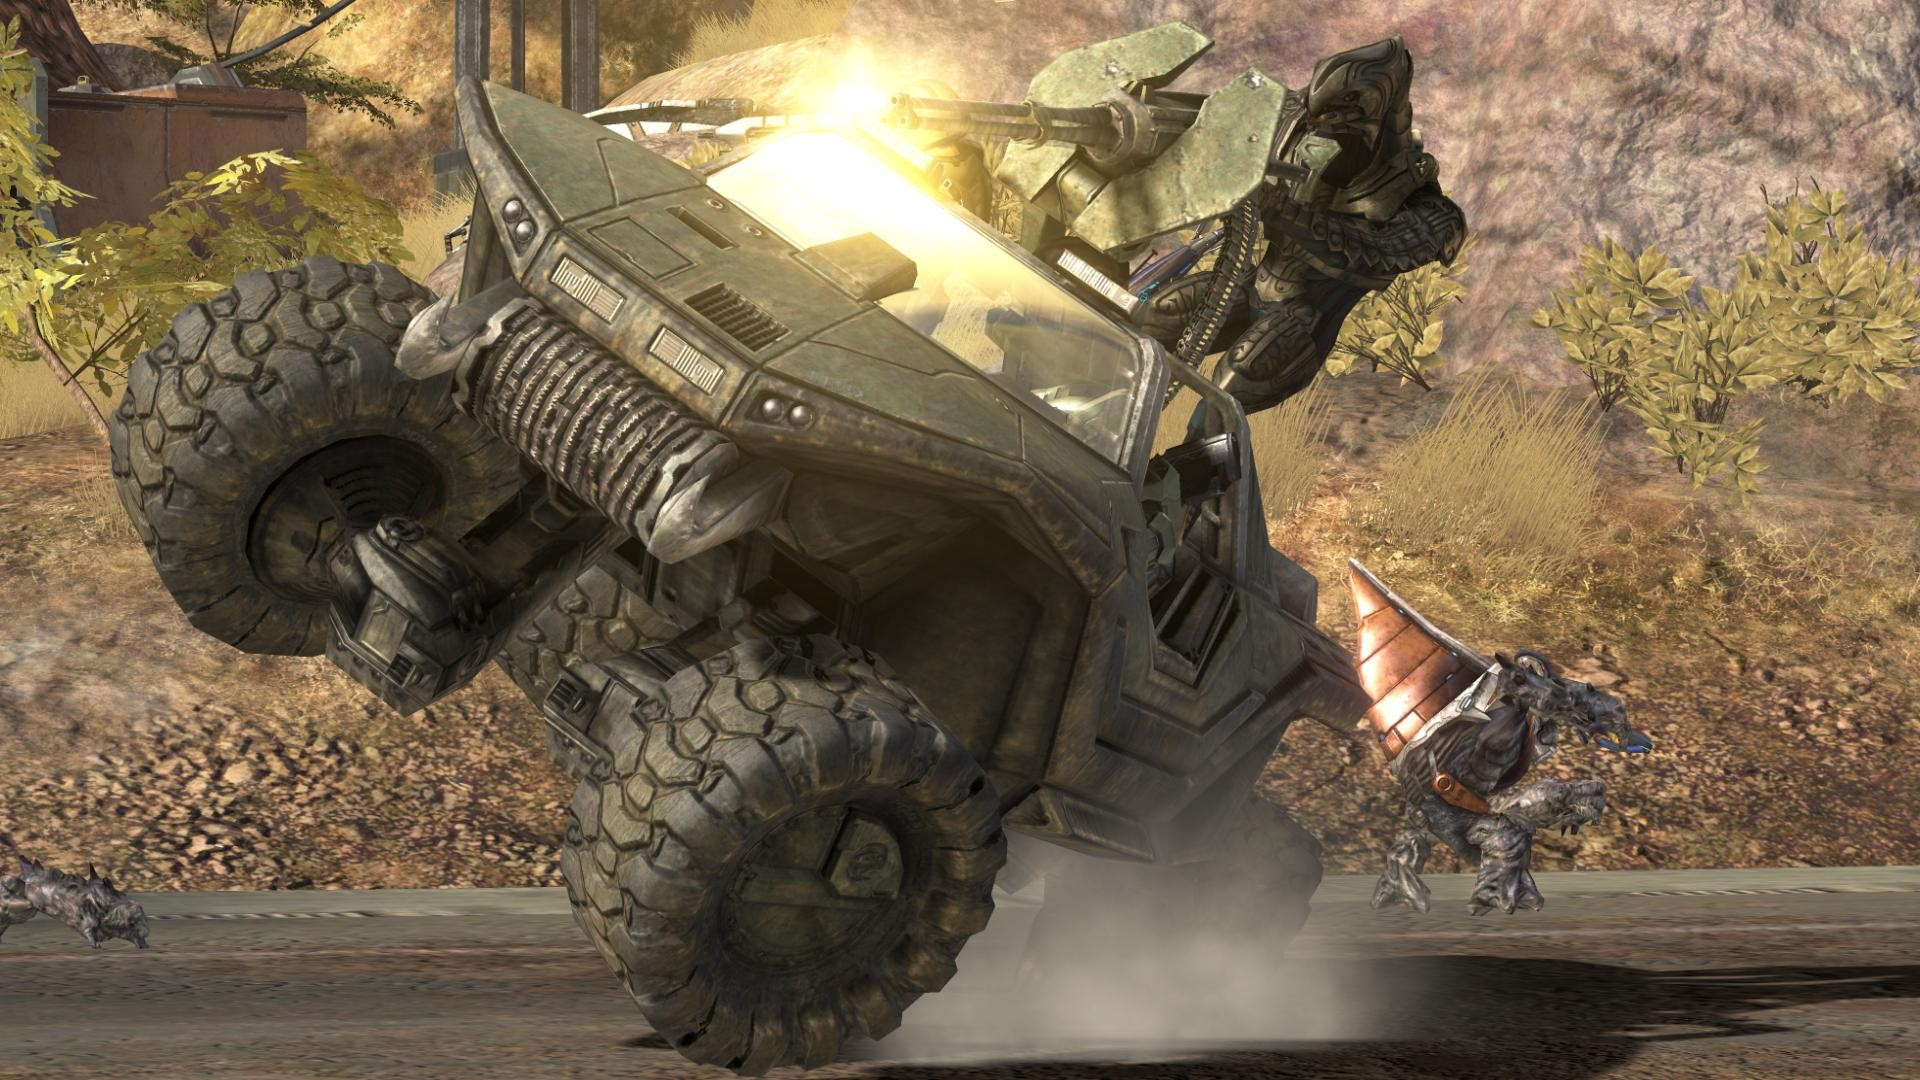 Download Wallpapers Download Halo Master Chief Warthog Unggoy